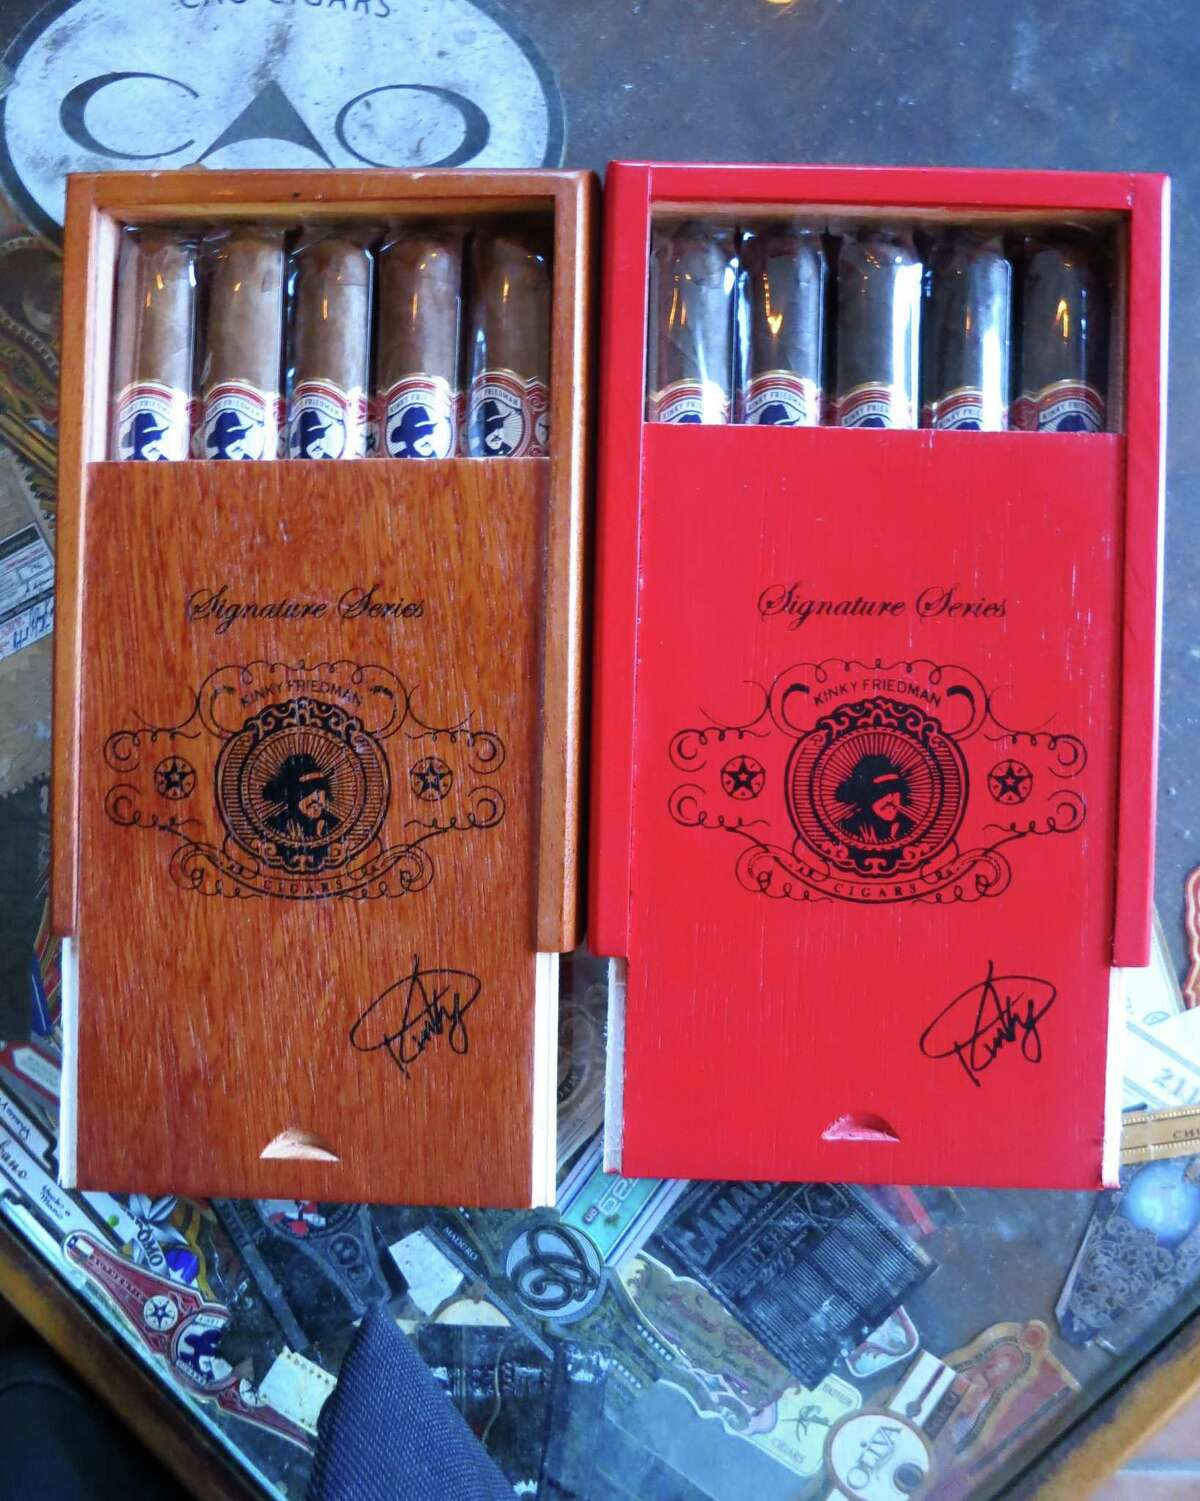 You can find Kinky Friedman's brand of cigars at the Havana Alley Cigar Shop & Lounge in Galveston.